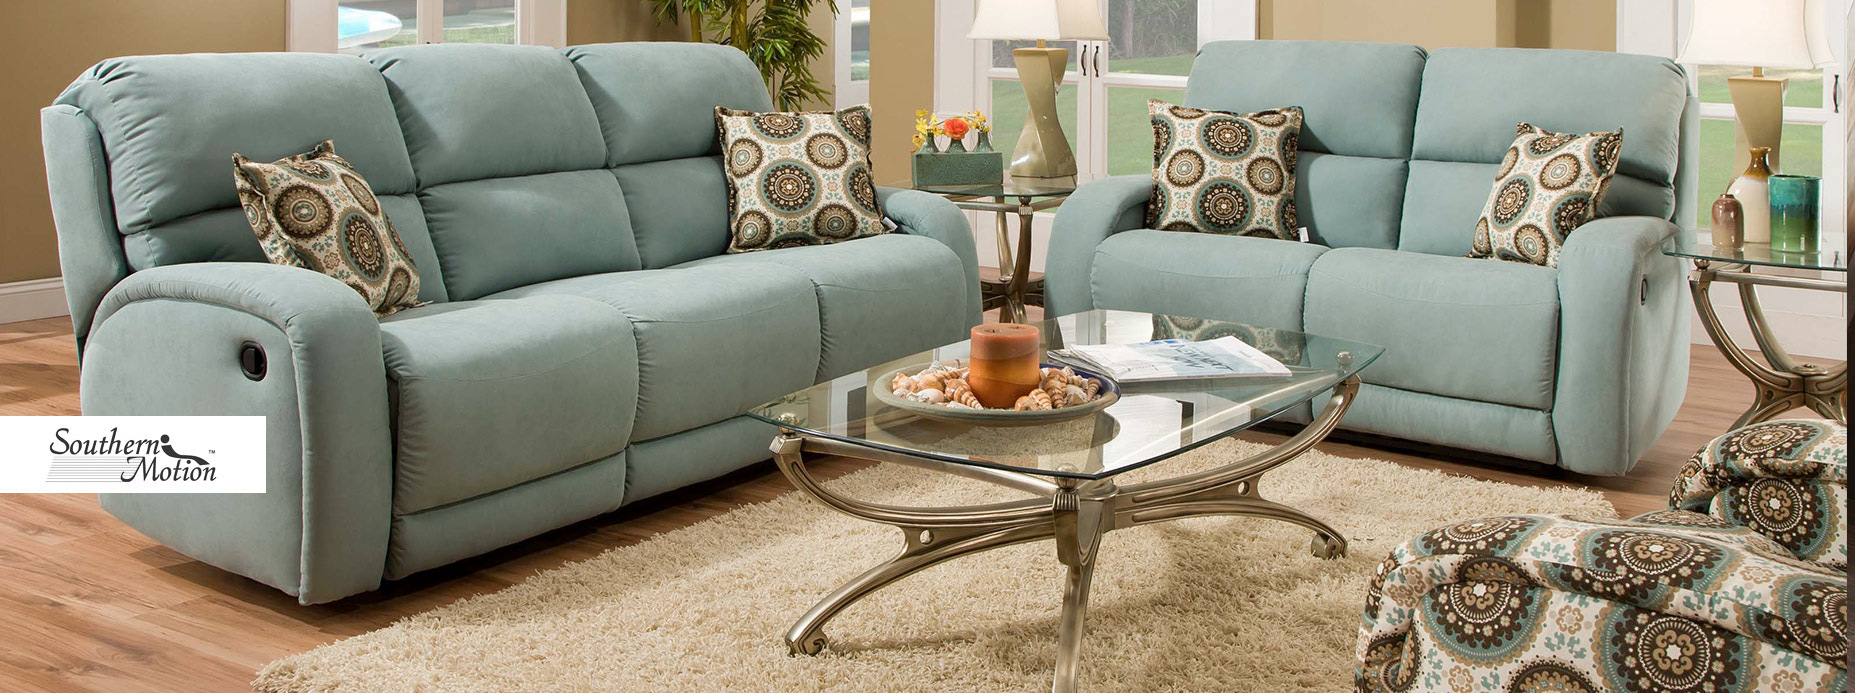 Southern Motion Furniture Discount Store And Showroom In